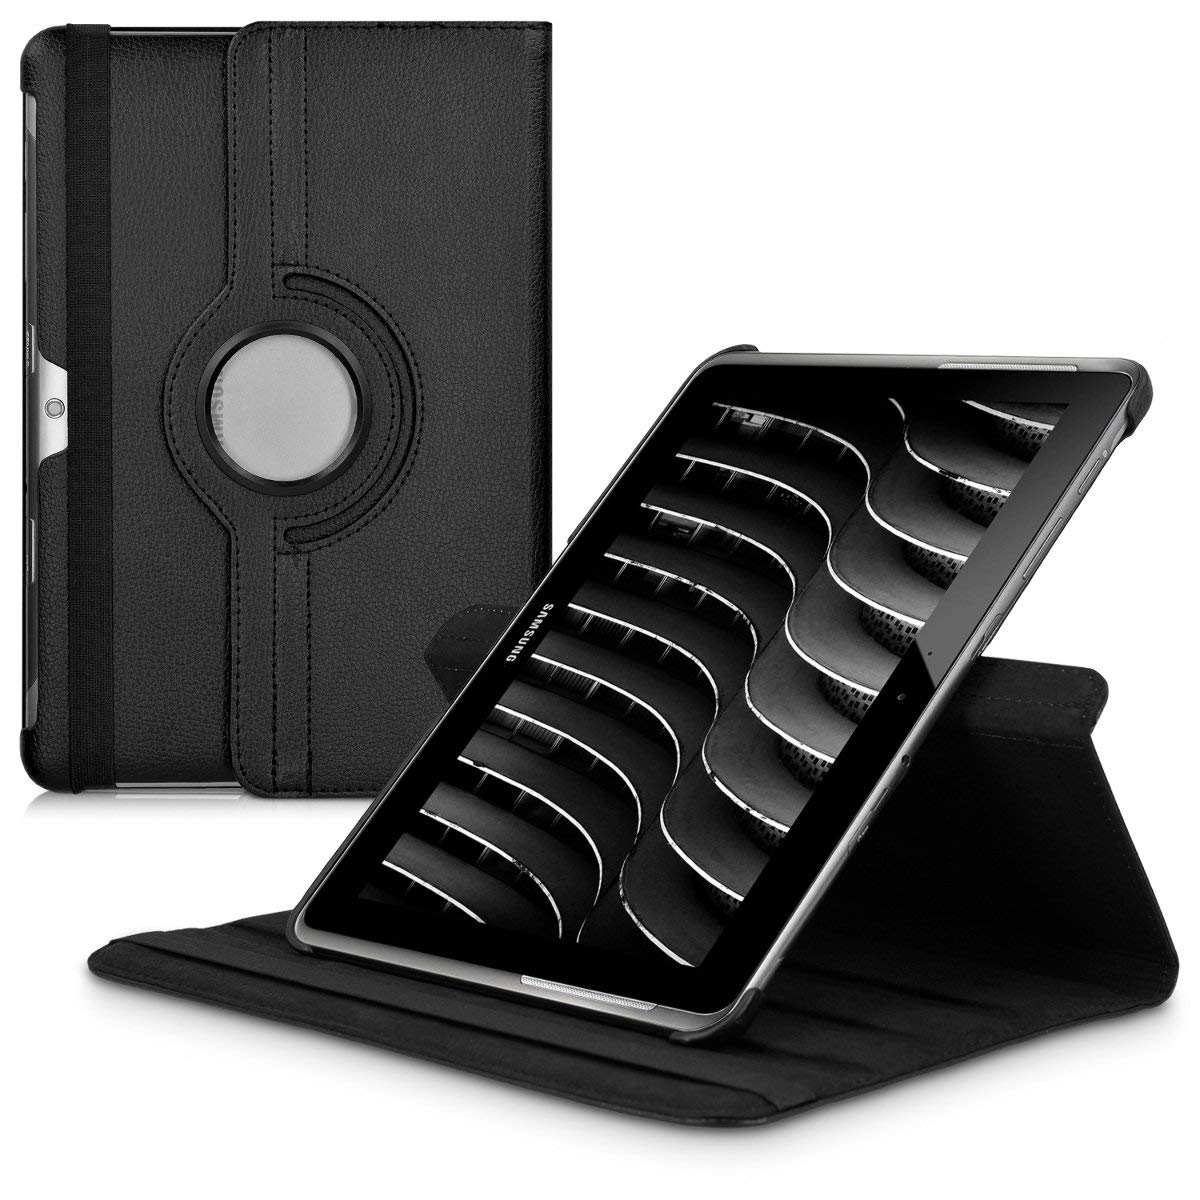 360 Degree Rotating PU Leather Case for Samsung Galaxy Tab 2 10.1 Magnet Auto Wake/sleep Cover GT P5100 P5110 P7500 P7510360 Degree Rotating PU Leather Case for Samsung Galaxy Tab 2 10.1 Magnet Auto Wake/sleep Cover GT P5100 P5110 P7500 P7510